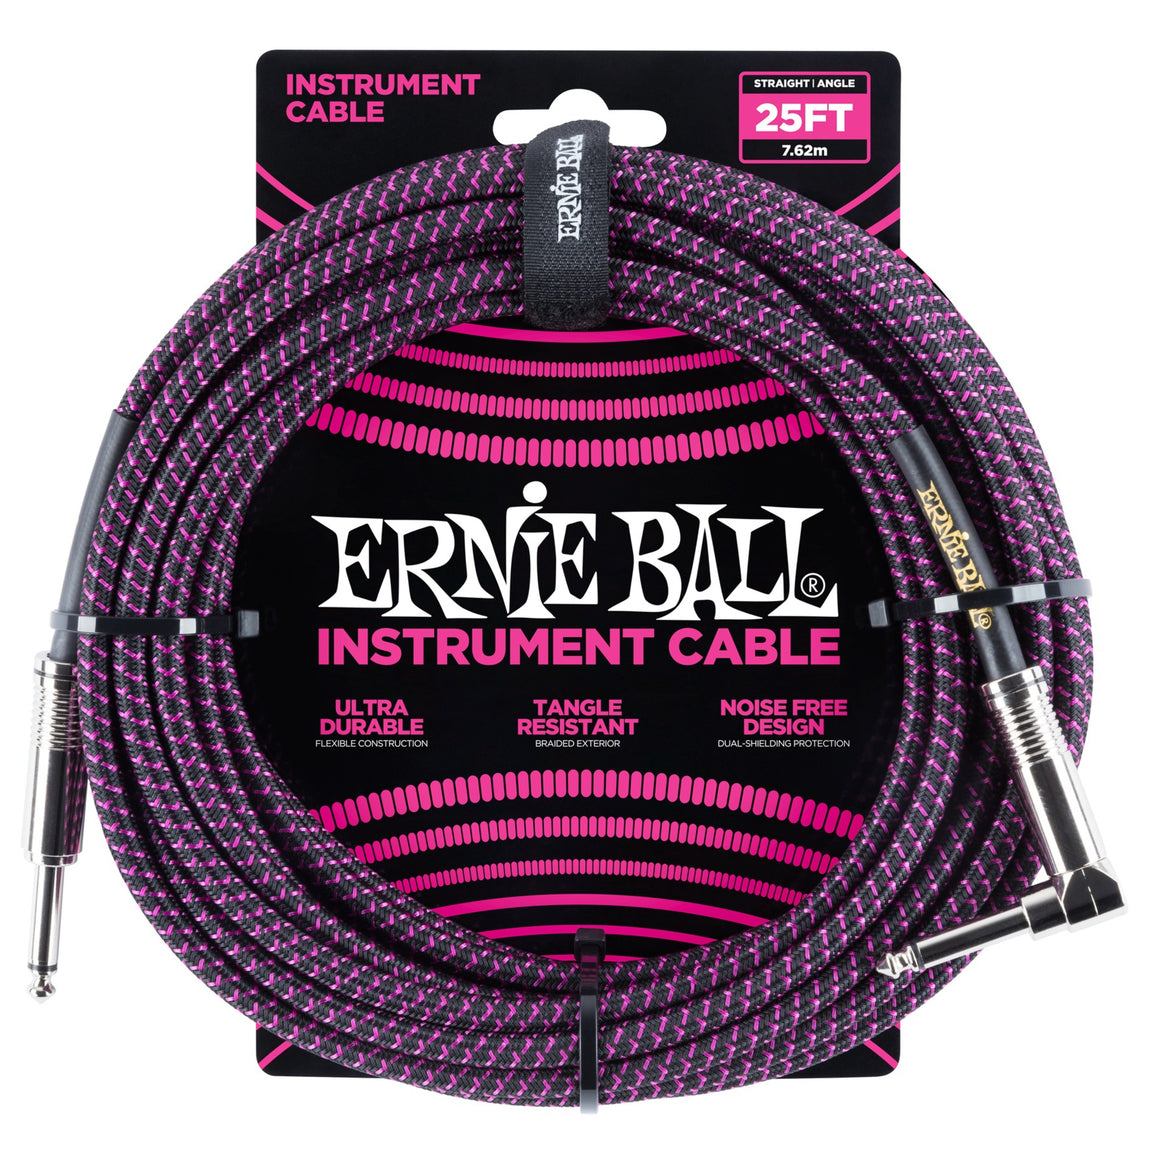 Ernie Ball 6068 25ft Purple/Black Straight/Angle Instrument Cable